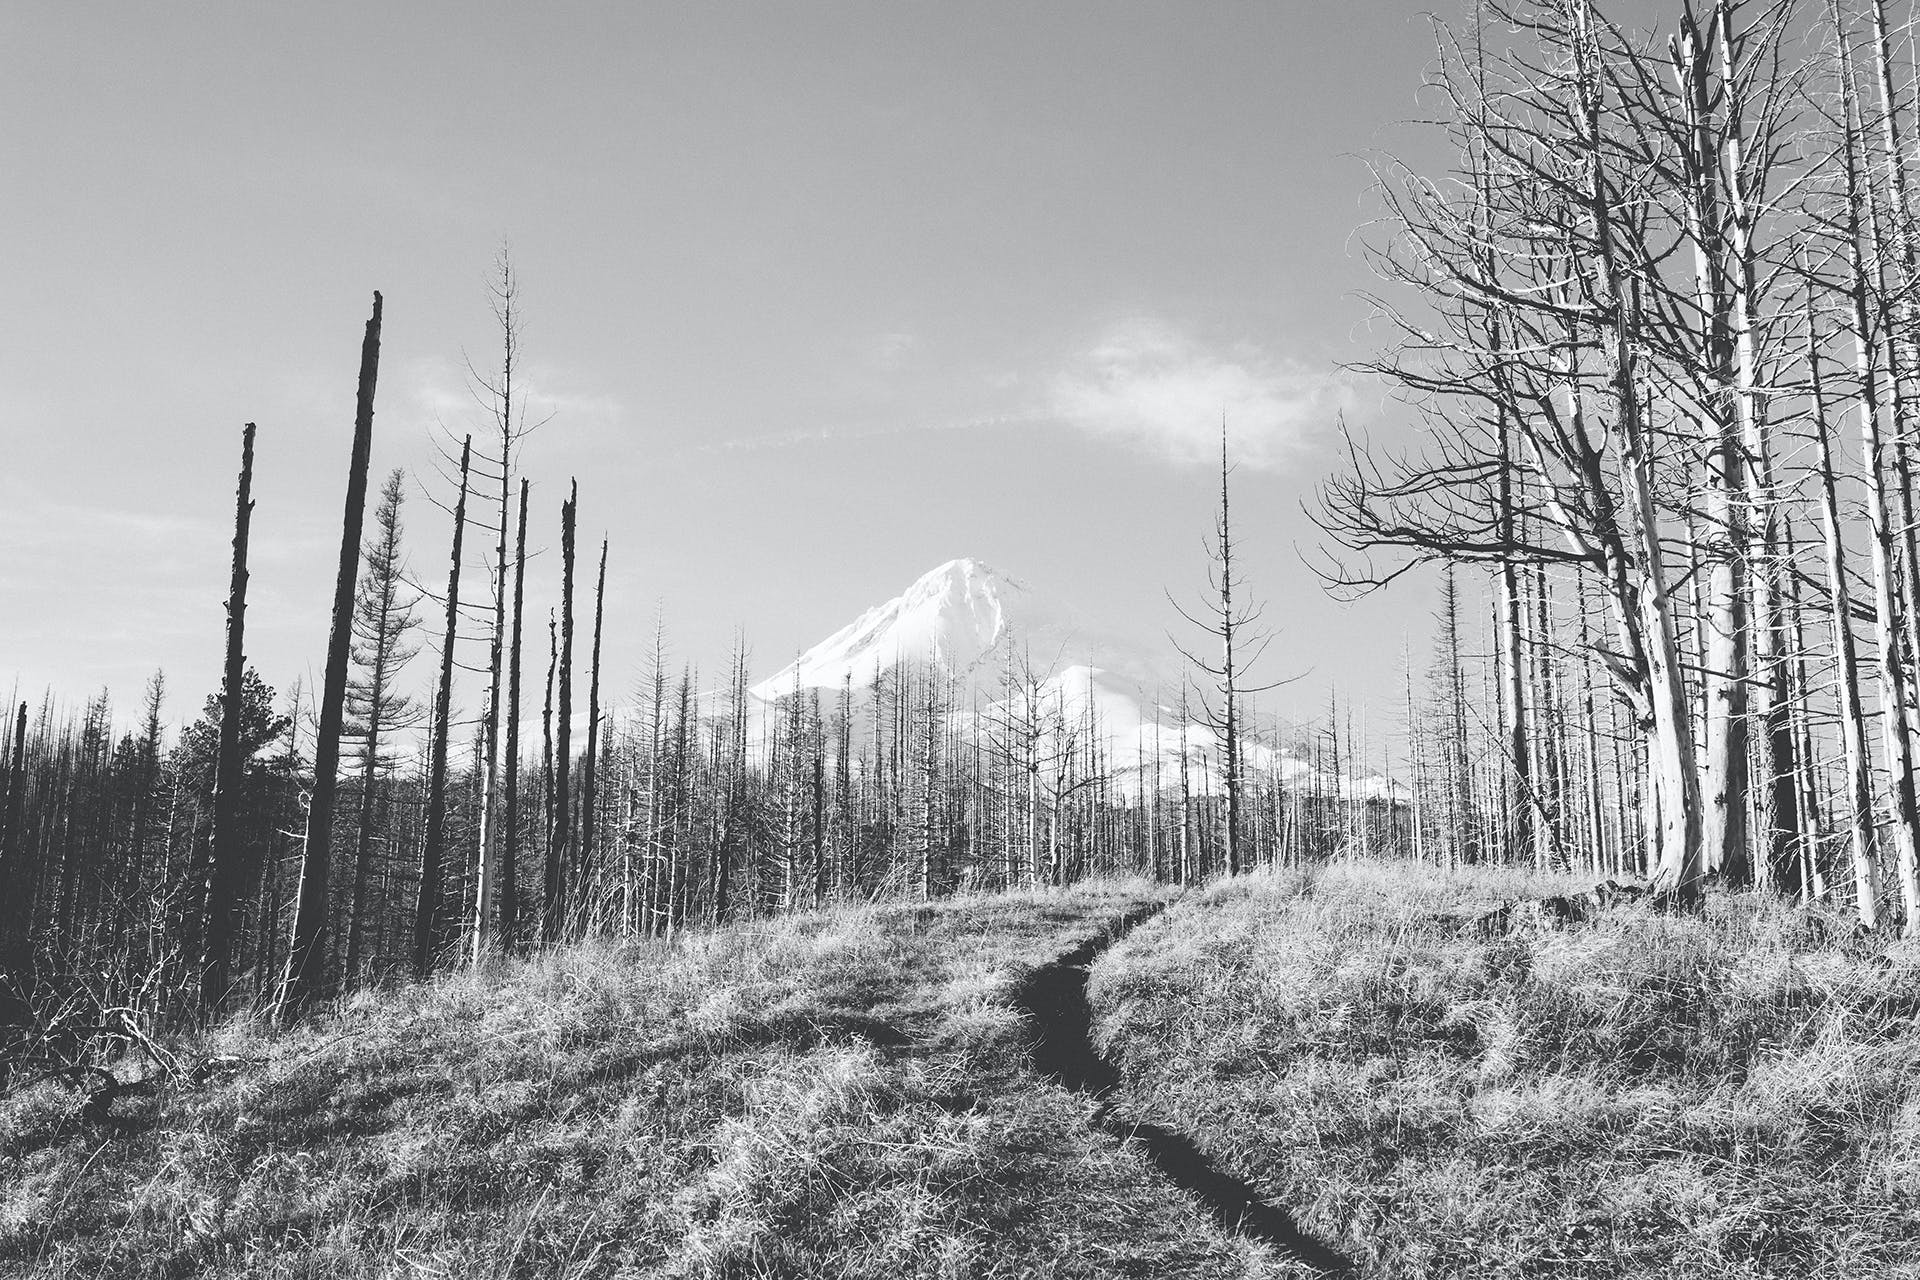 Grayscale Photo of Bare Trees Near Mountain